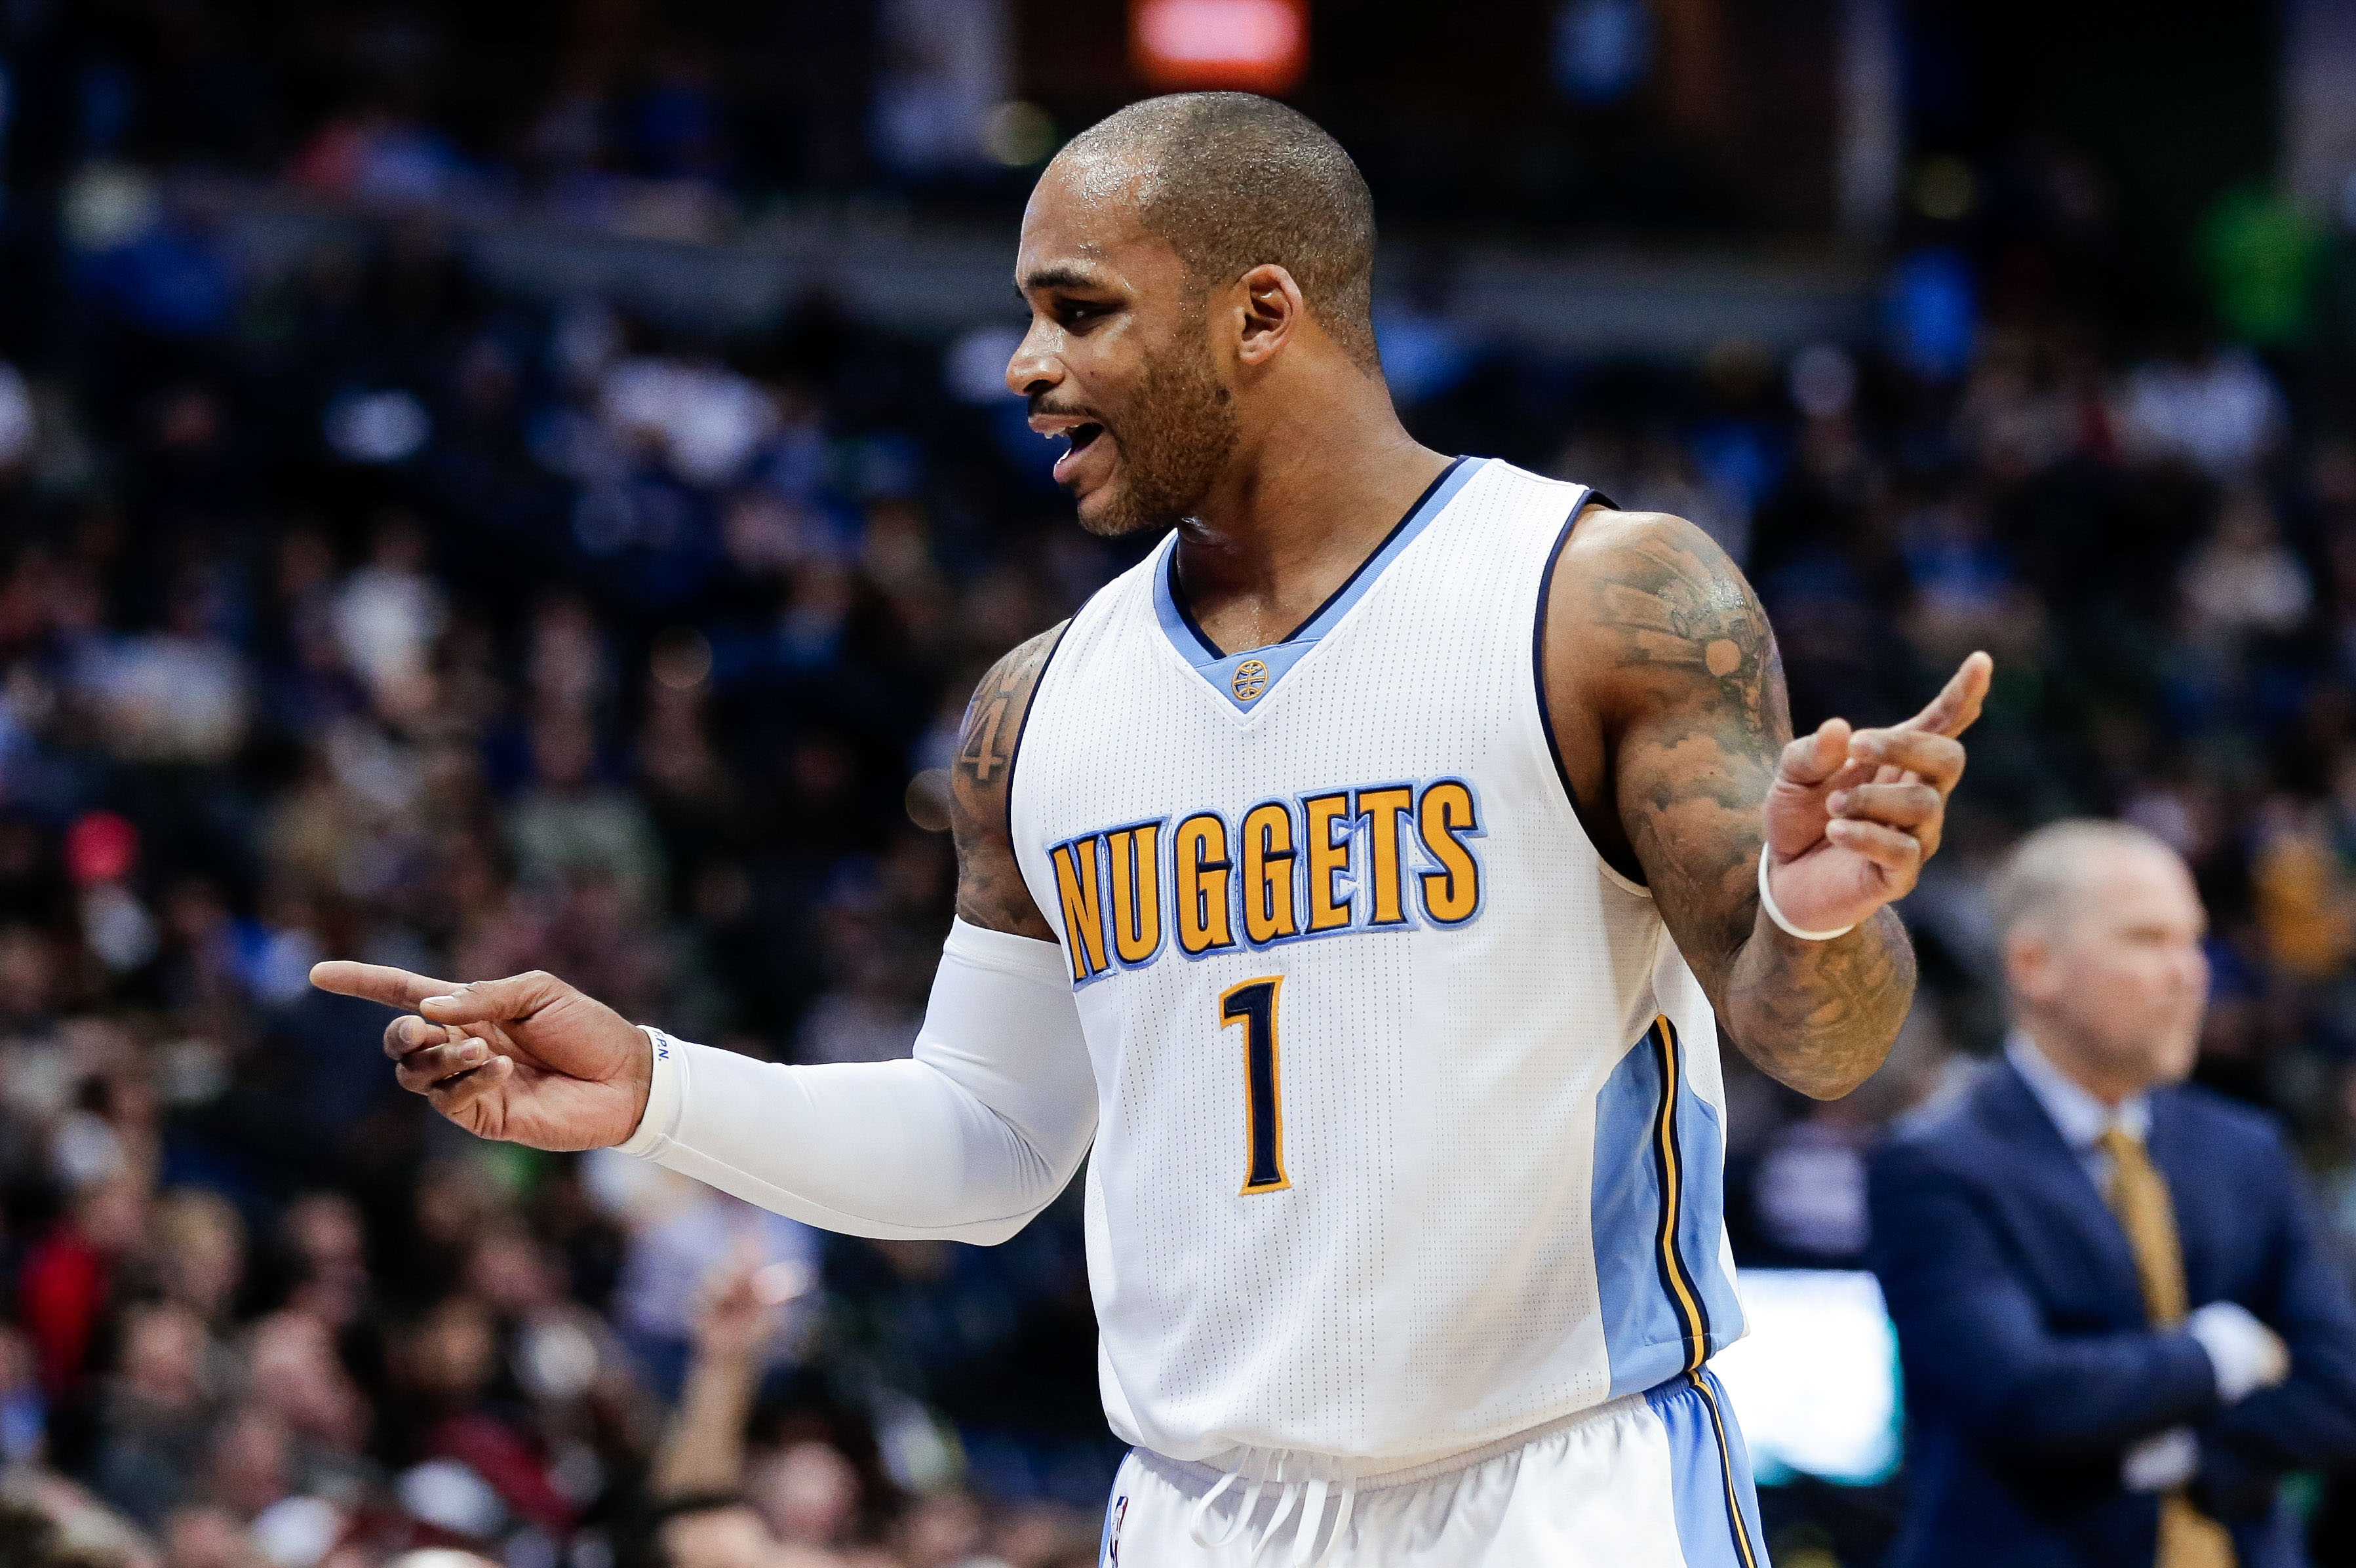 Jameer Nelson has now taken over the starting point guard role